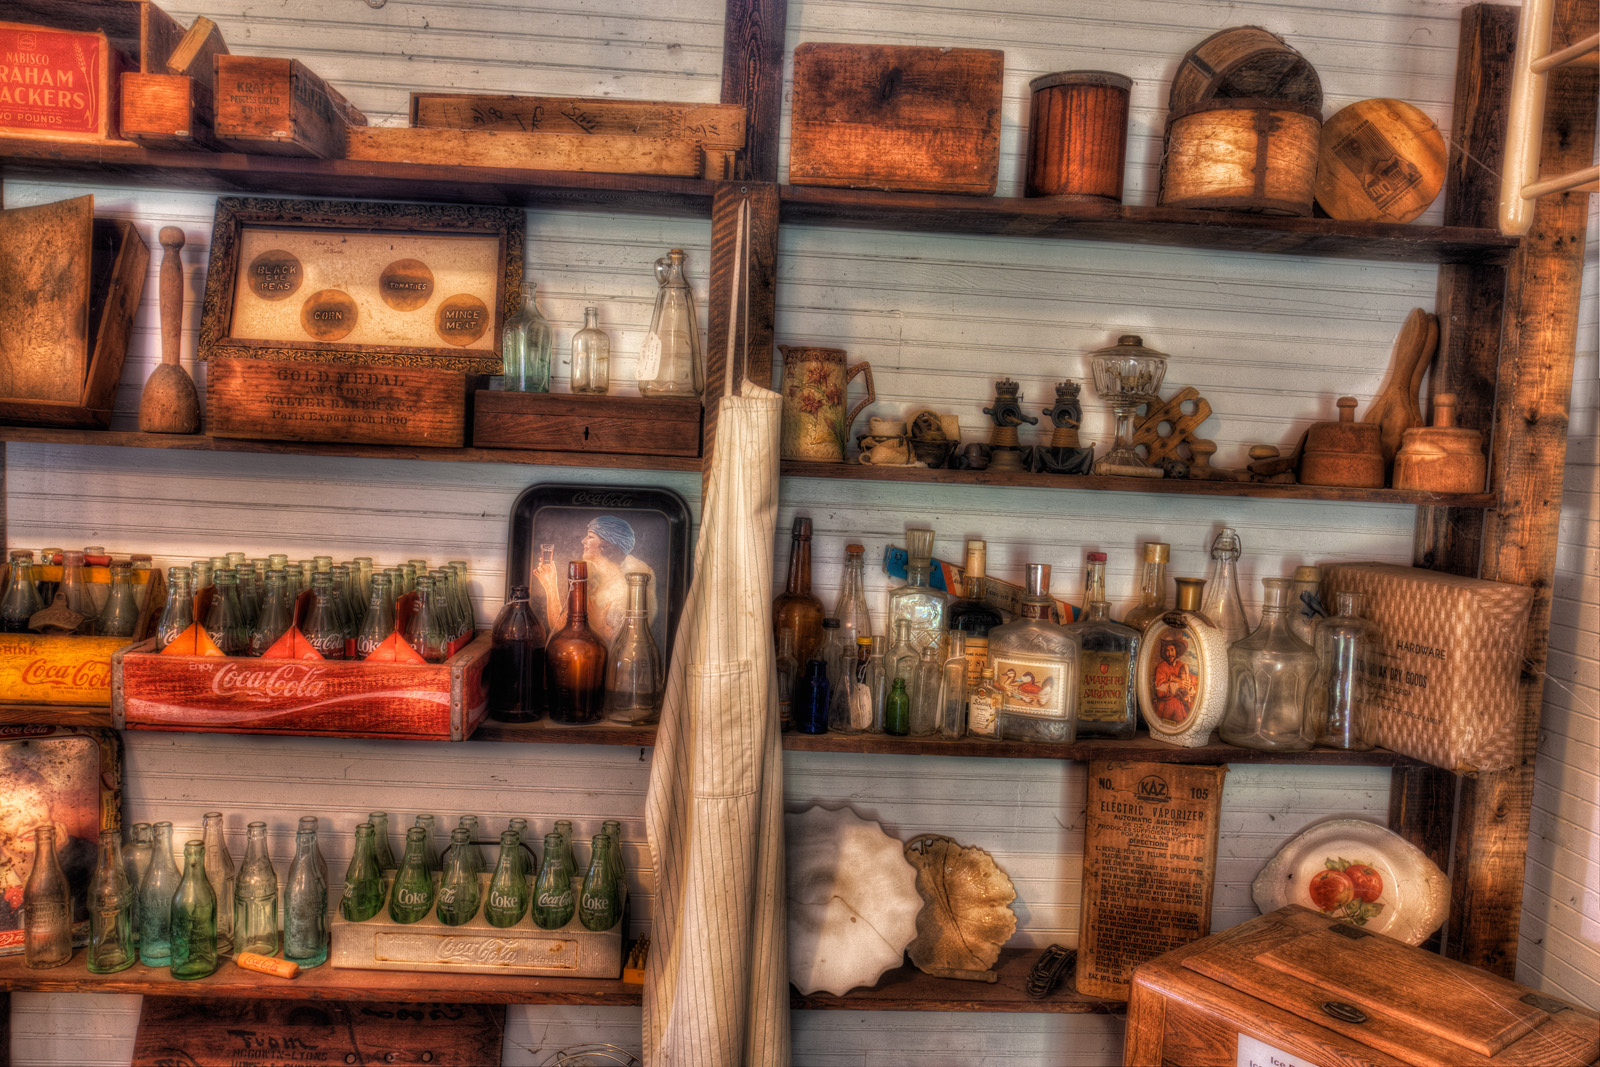 On the Shelves of the General Store